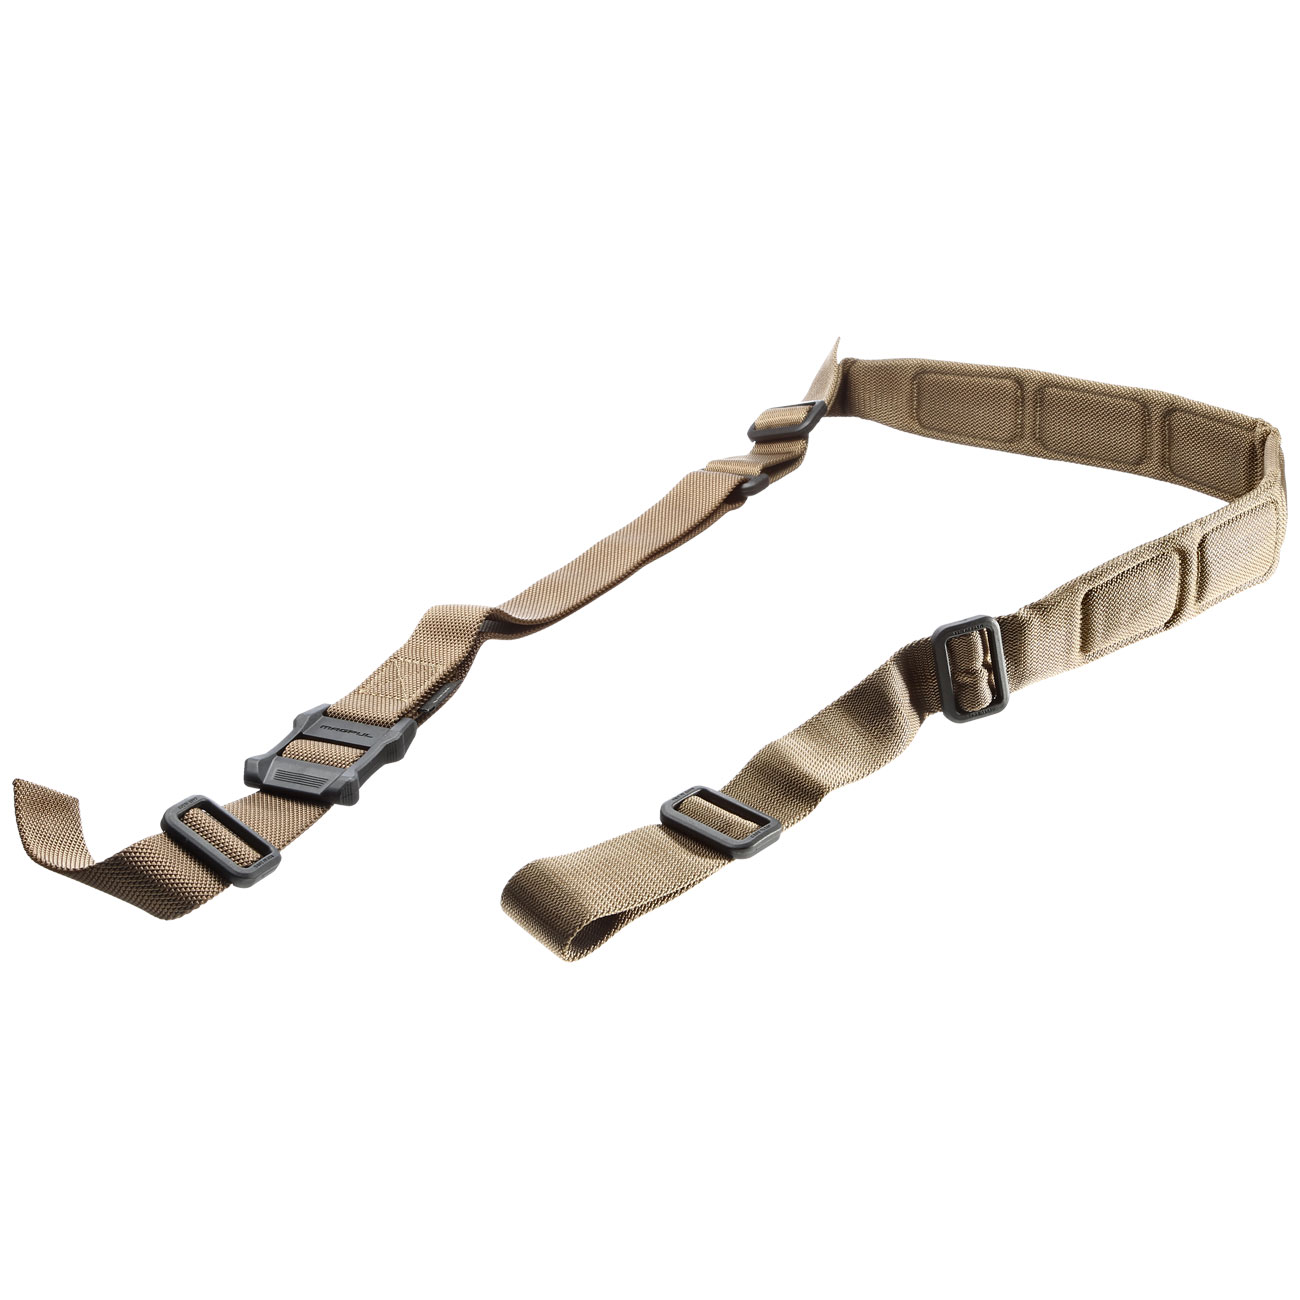 MagPul MS1 Multi-Mission Padded Sling 2-Punkt Tragegurt coyote 0